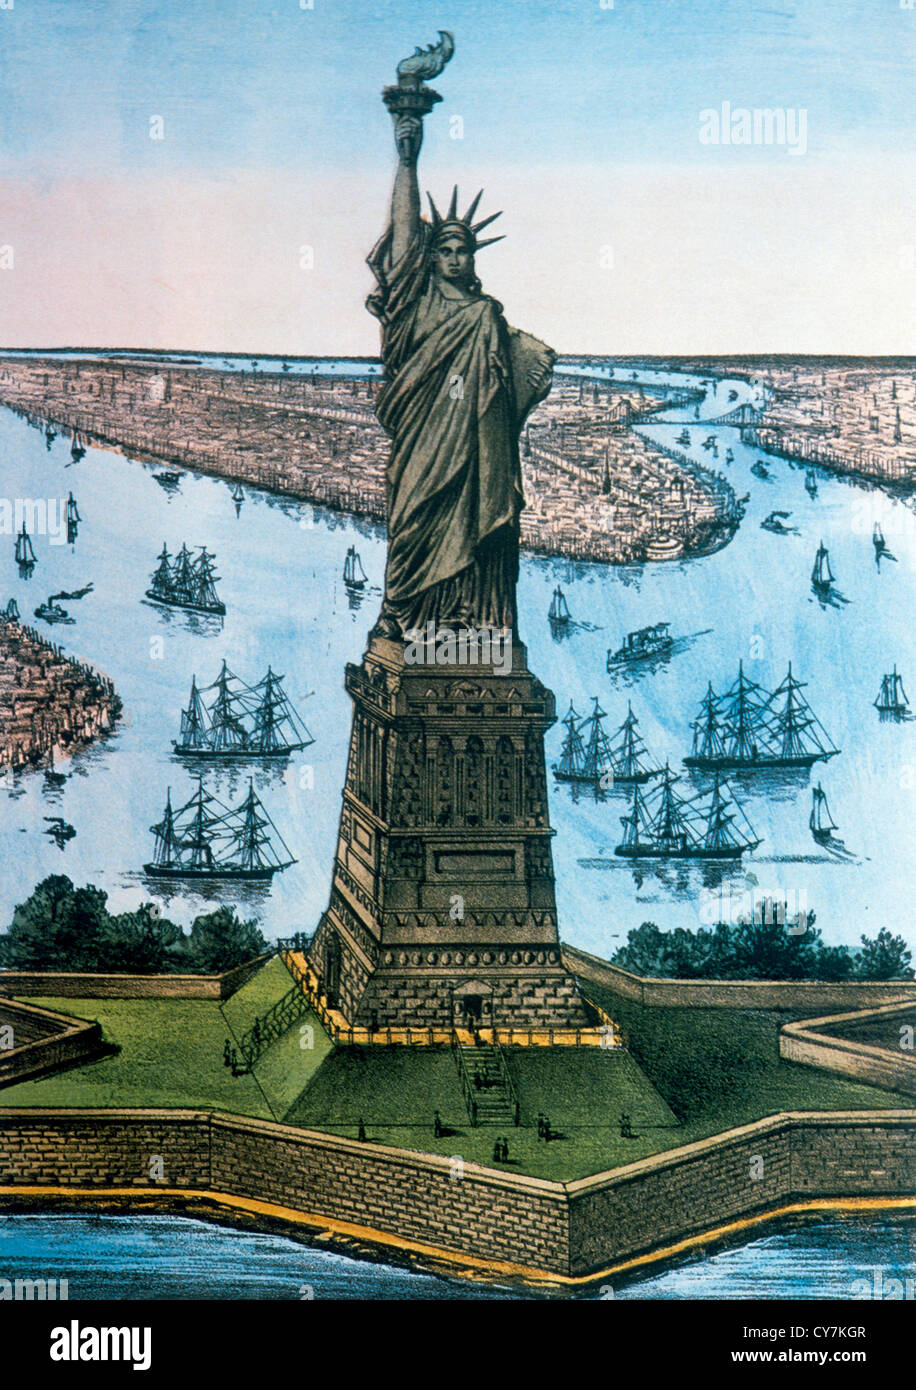 Statue de la liberté, New York, USA, Currier & Ives, lithographie, vers 1885 Photo Stock